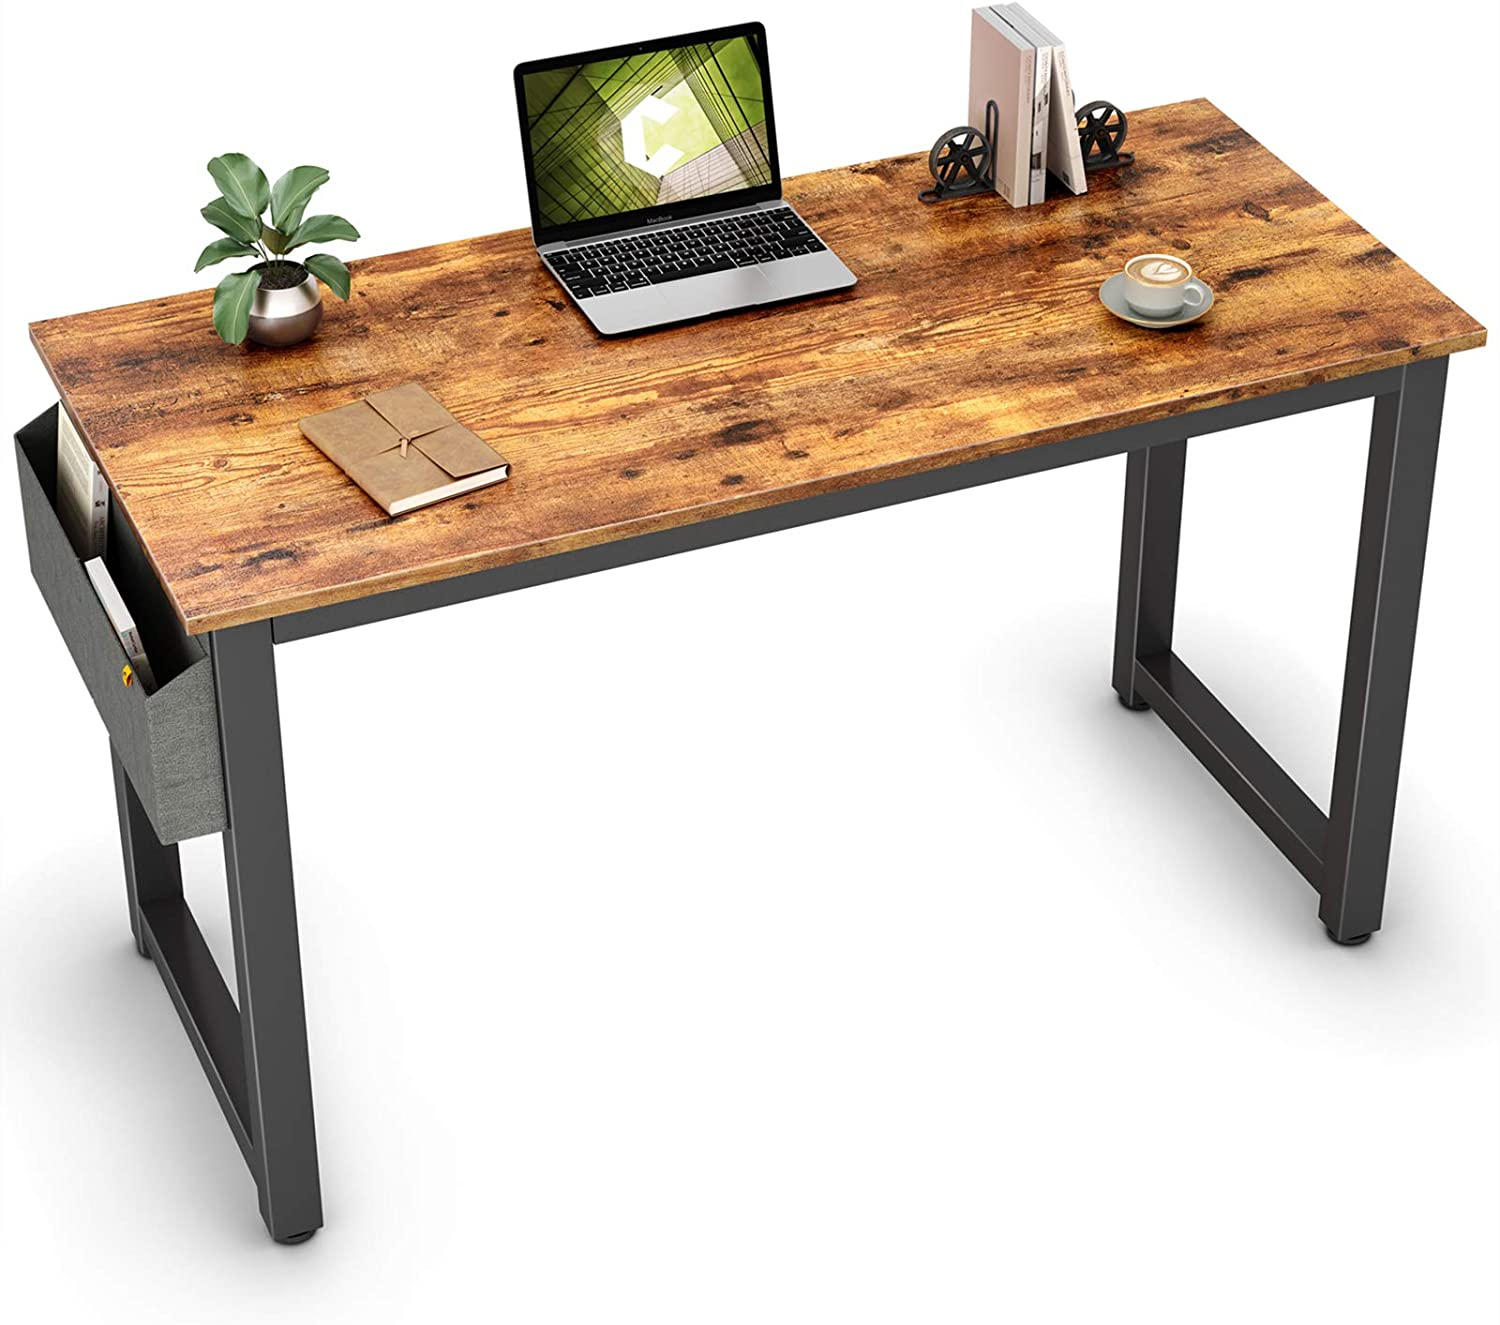 """Cubiker Computer Desk 40"""" Sturdy Office Desk Modern Simple Style Table for Home Office Use, Notebook Writing Desk with Extra Strong Legs, Rustic Brown"""